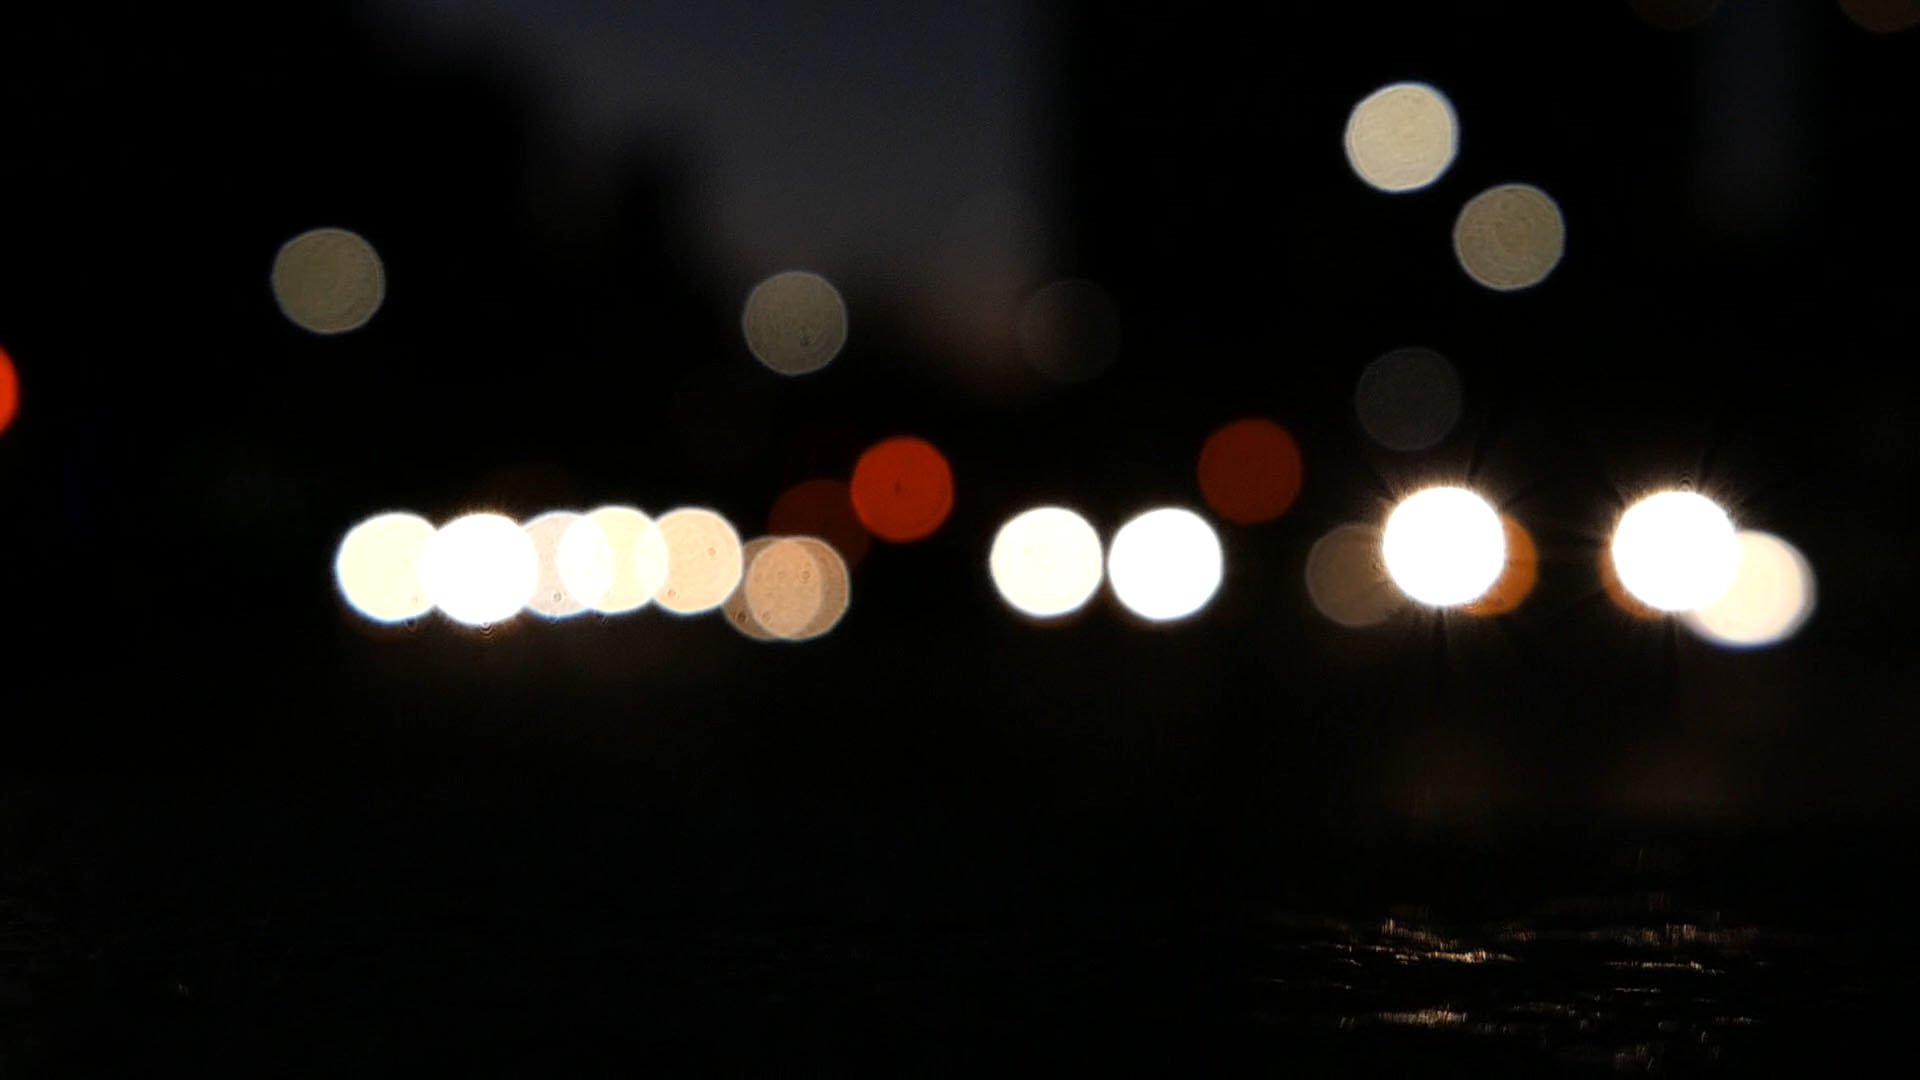 Blurred Car Lights in City